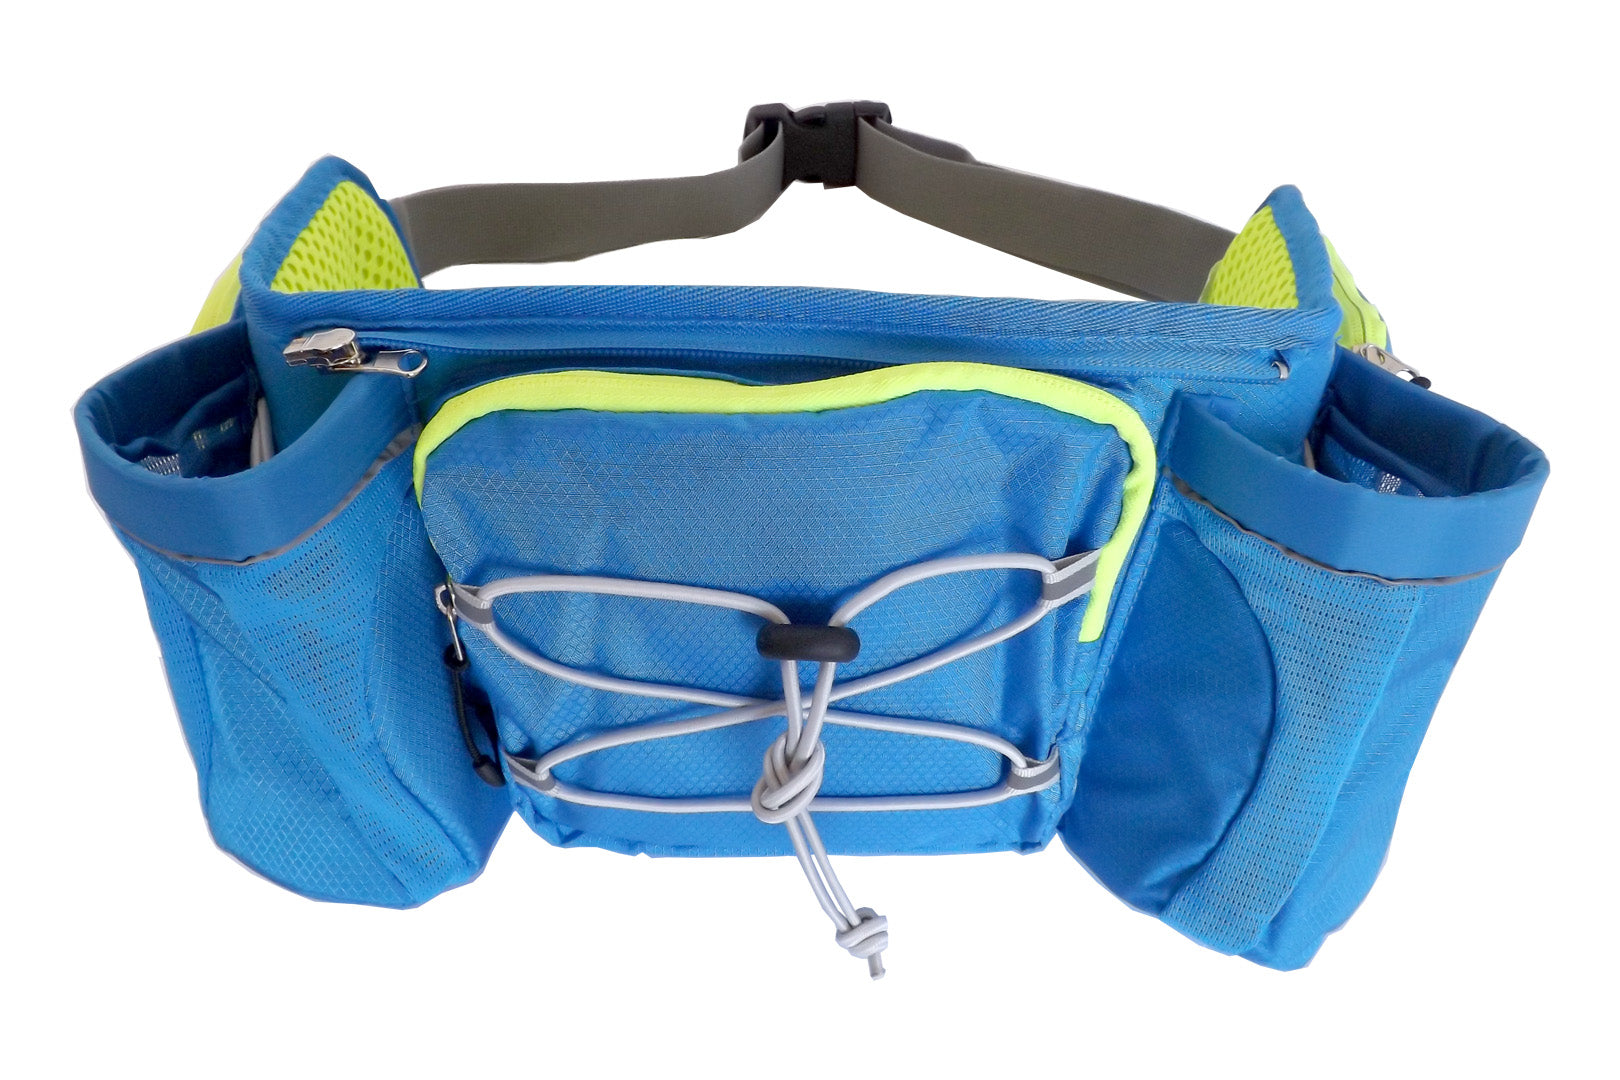 PSS Waist Pack Attachment